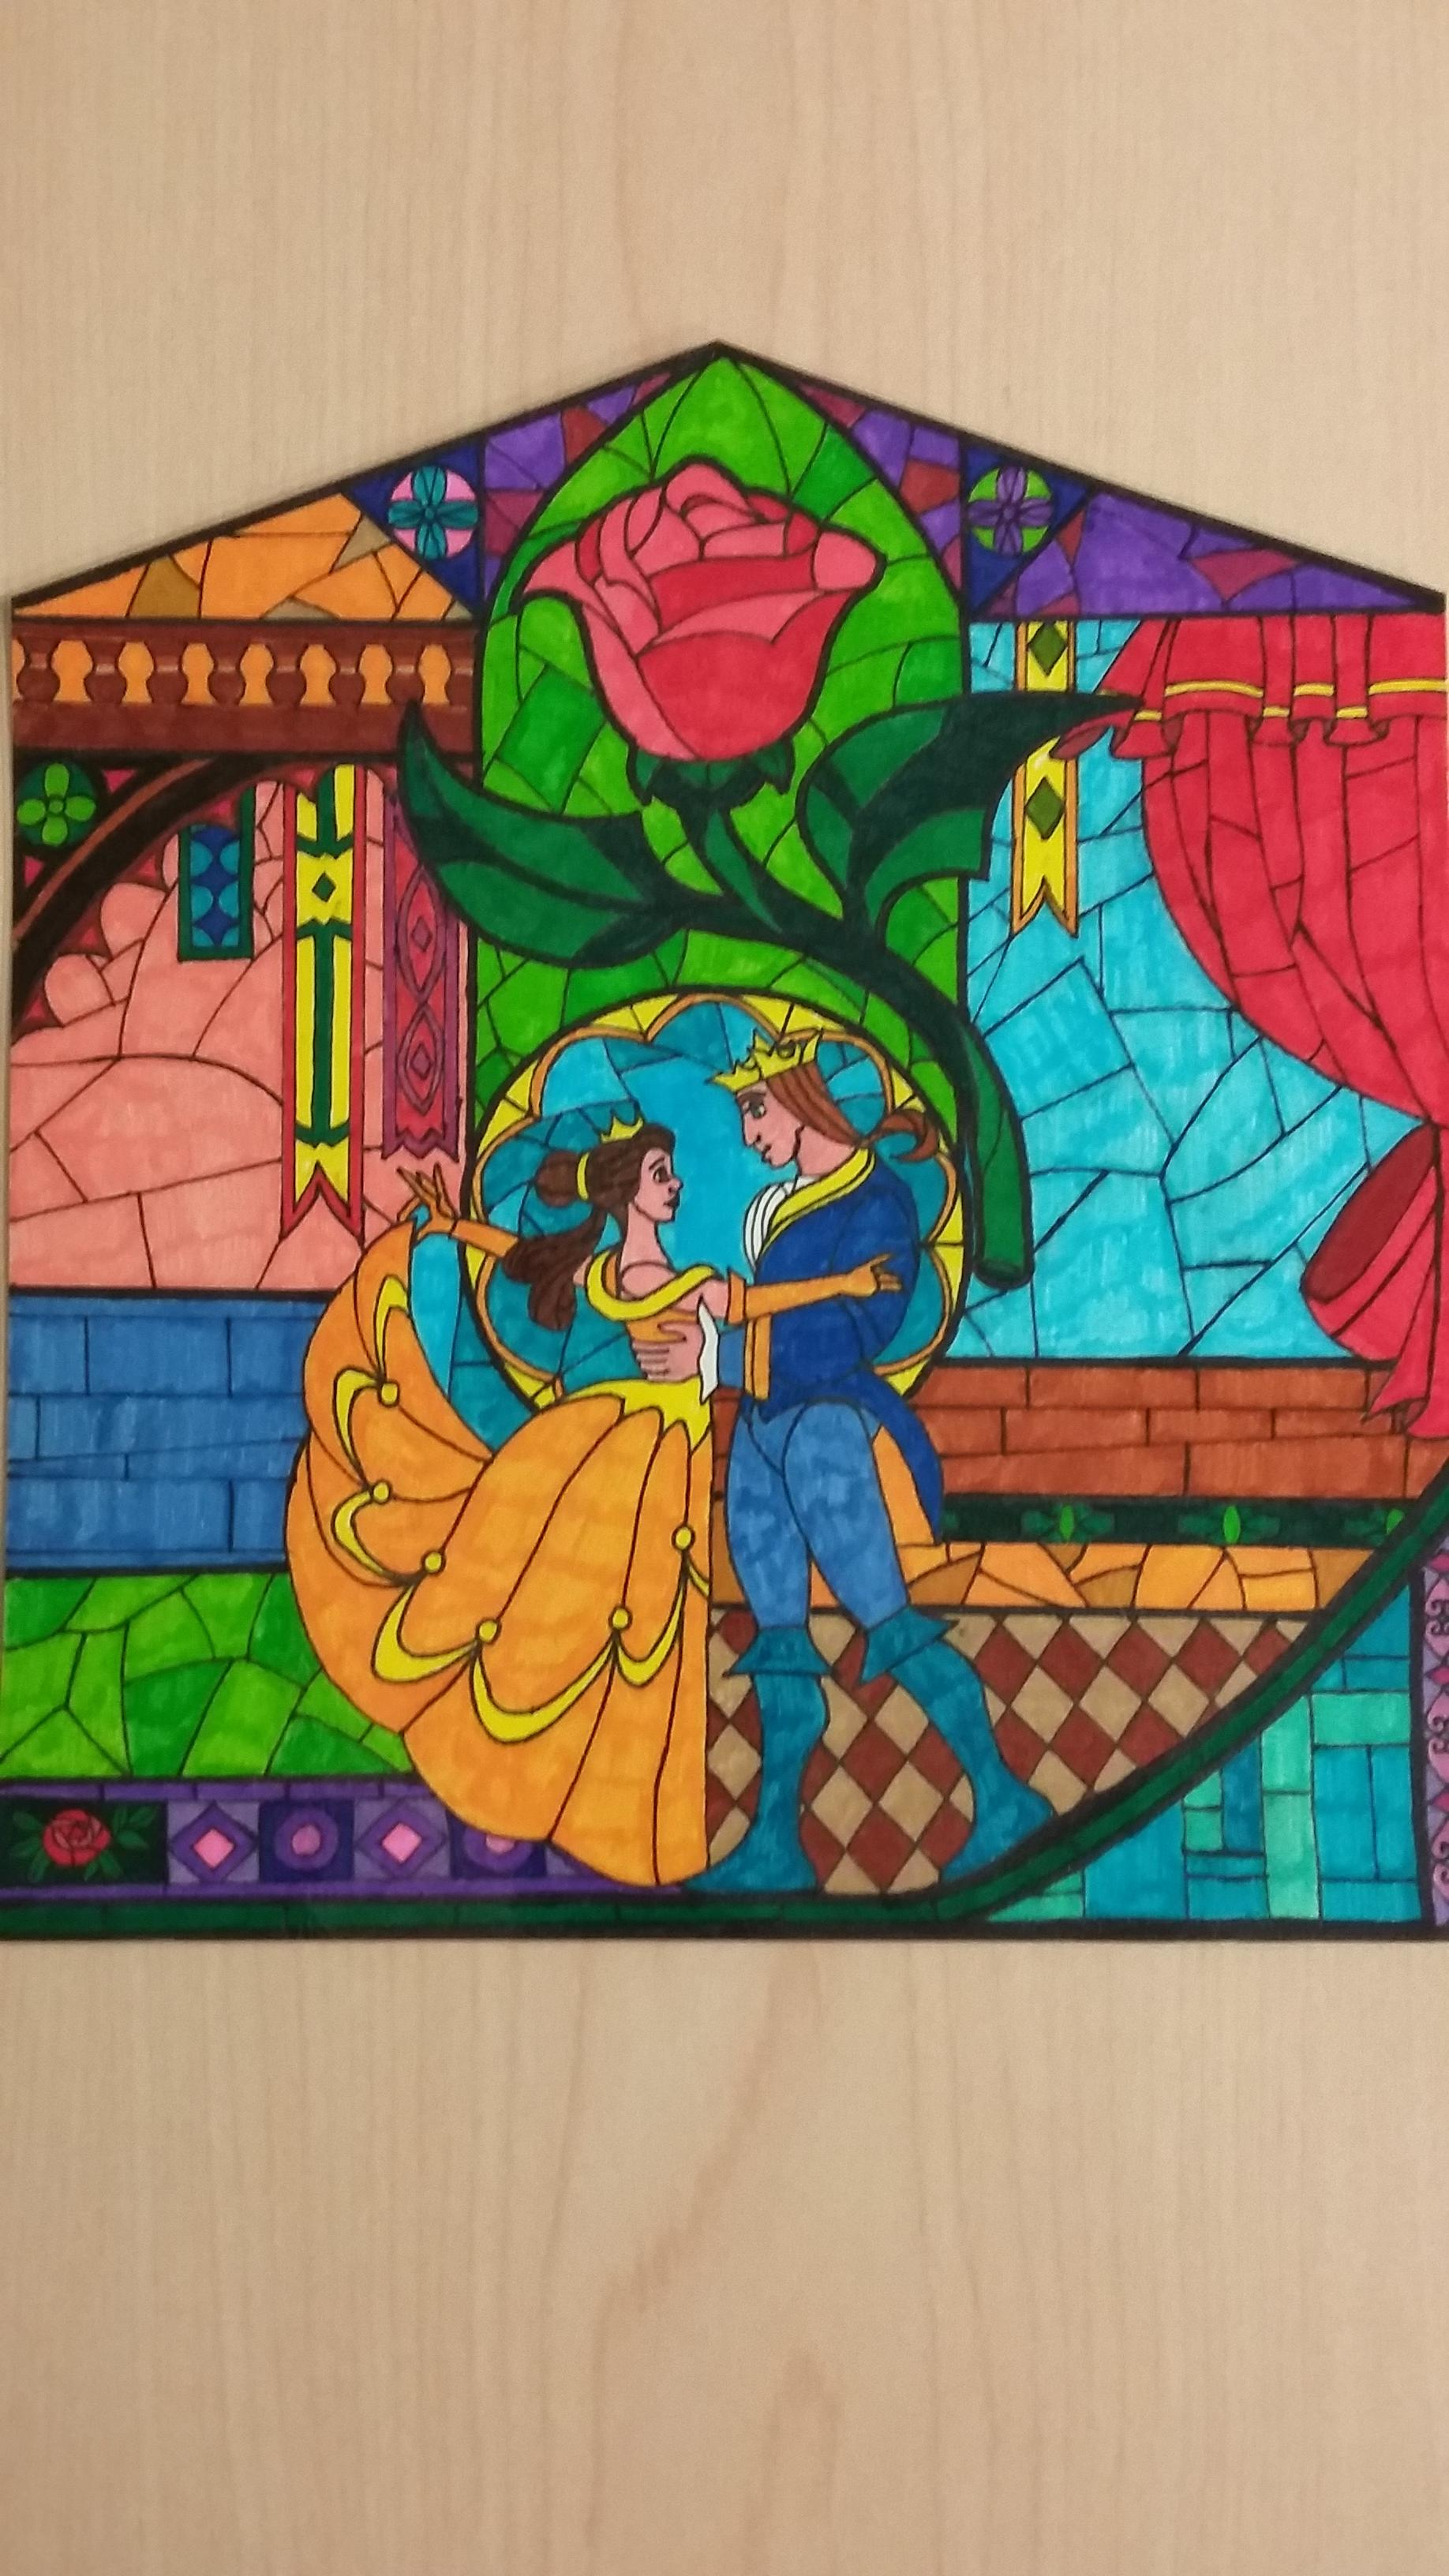 1836x3264 Beauty And The Beast Stained Glass Window Drawing